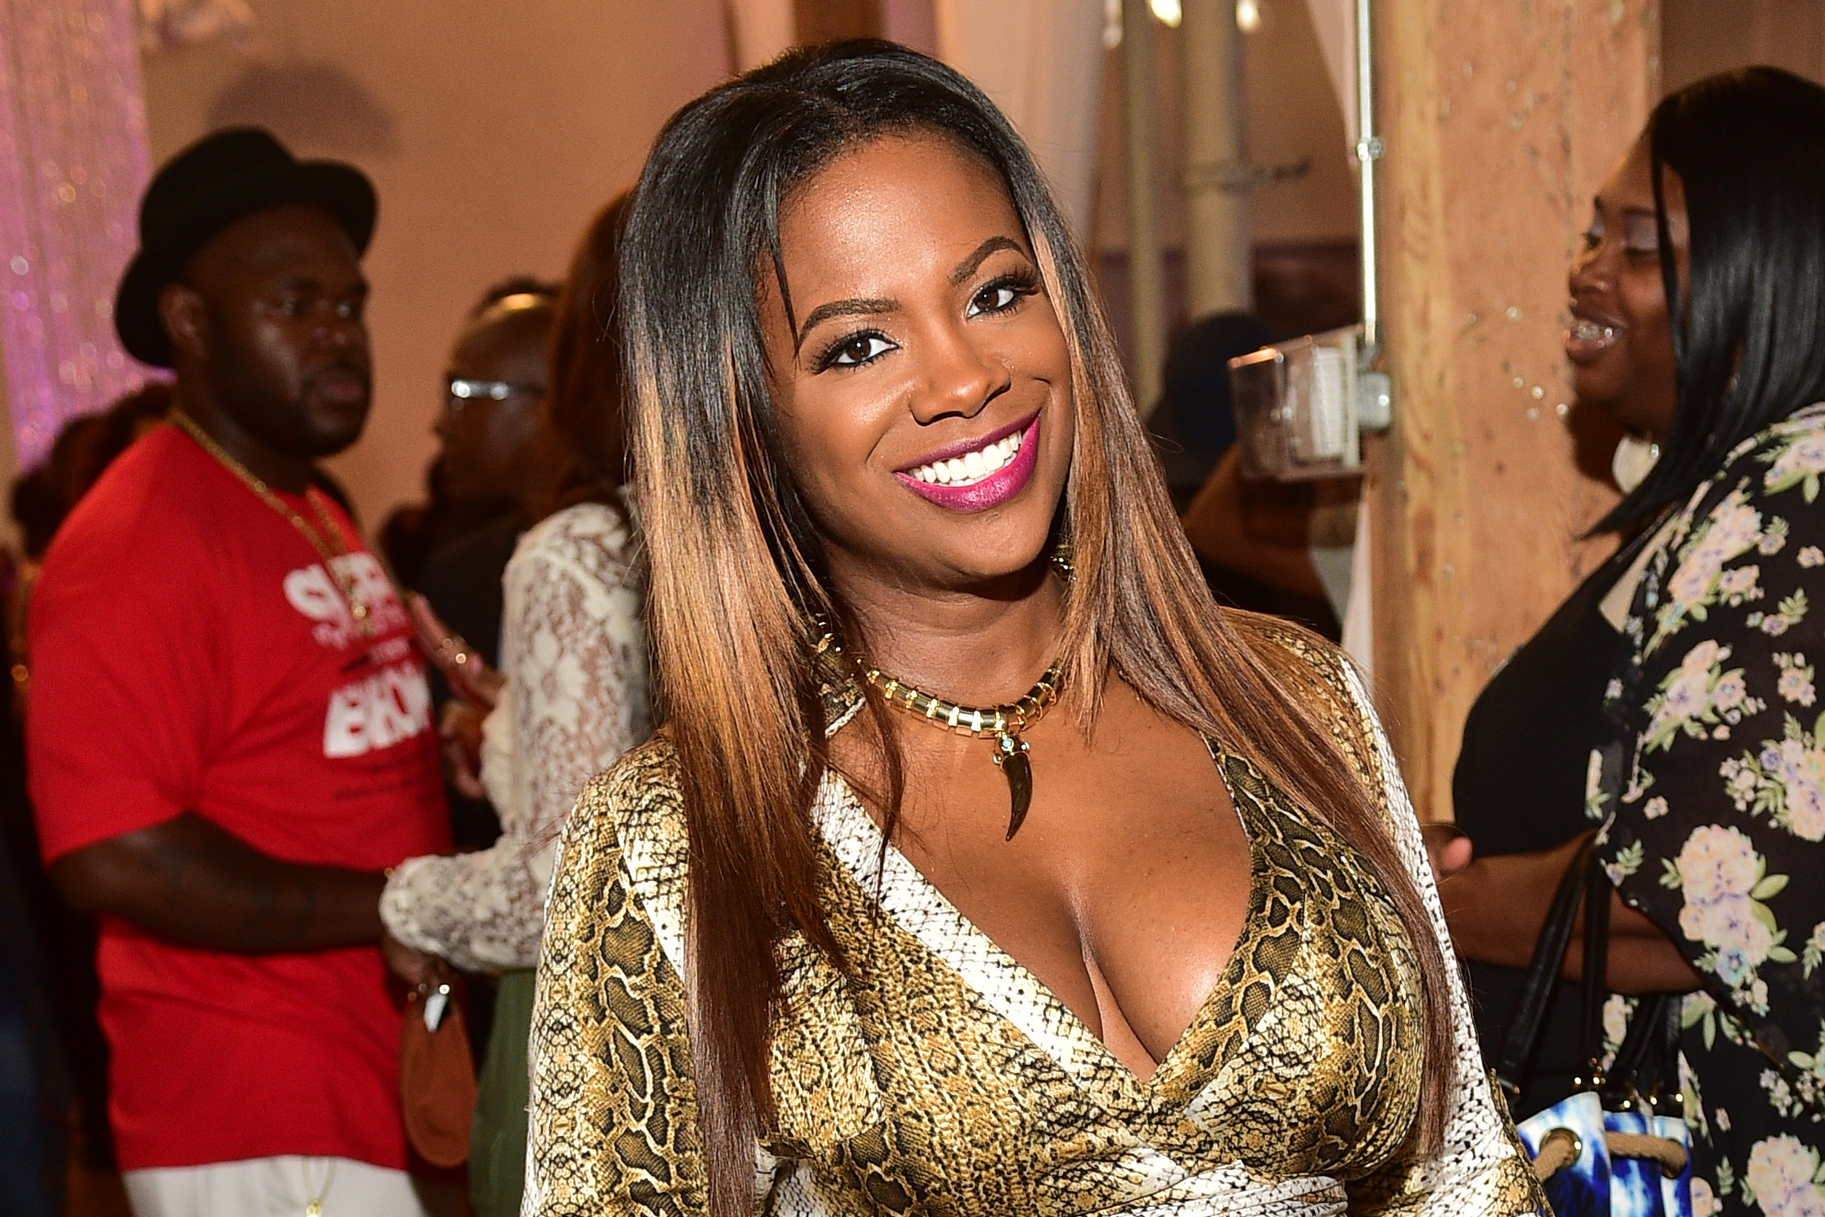 Kandi Burruss Celebrates Her Birthday - She Shared A Hilarious Video That You Definitely Have To Watch